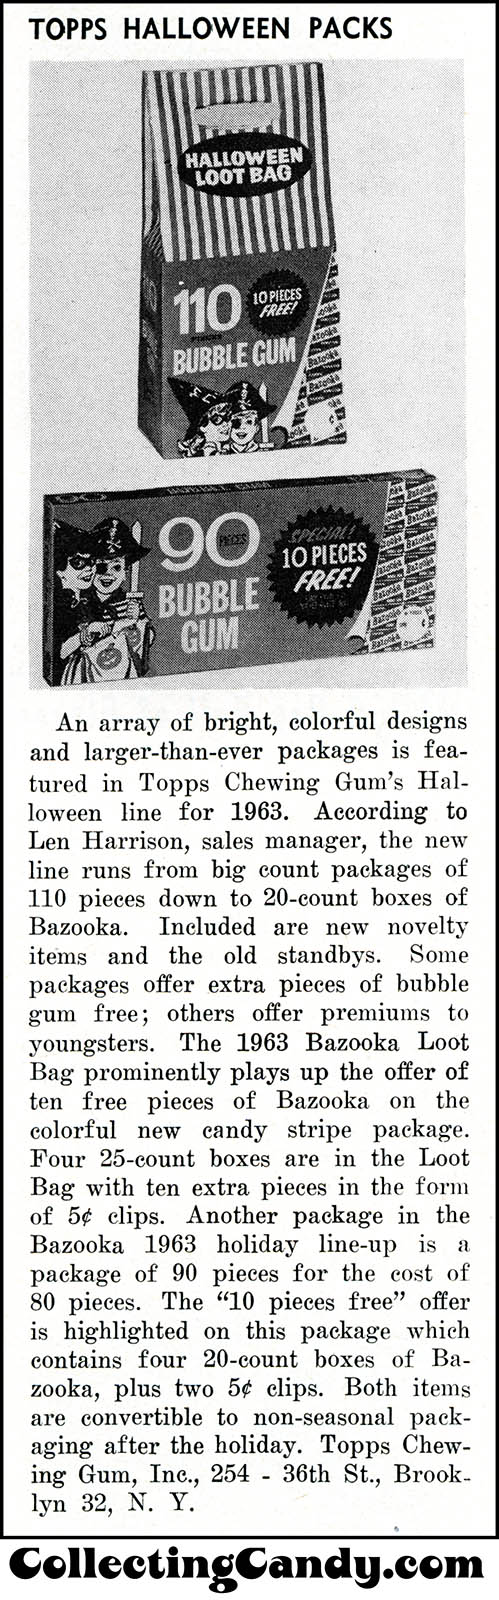 Topps - Bazooka Bubble Gum - 90-Pieces Halloween Mask box trade clipping - June 1963